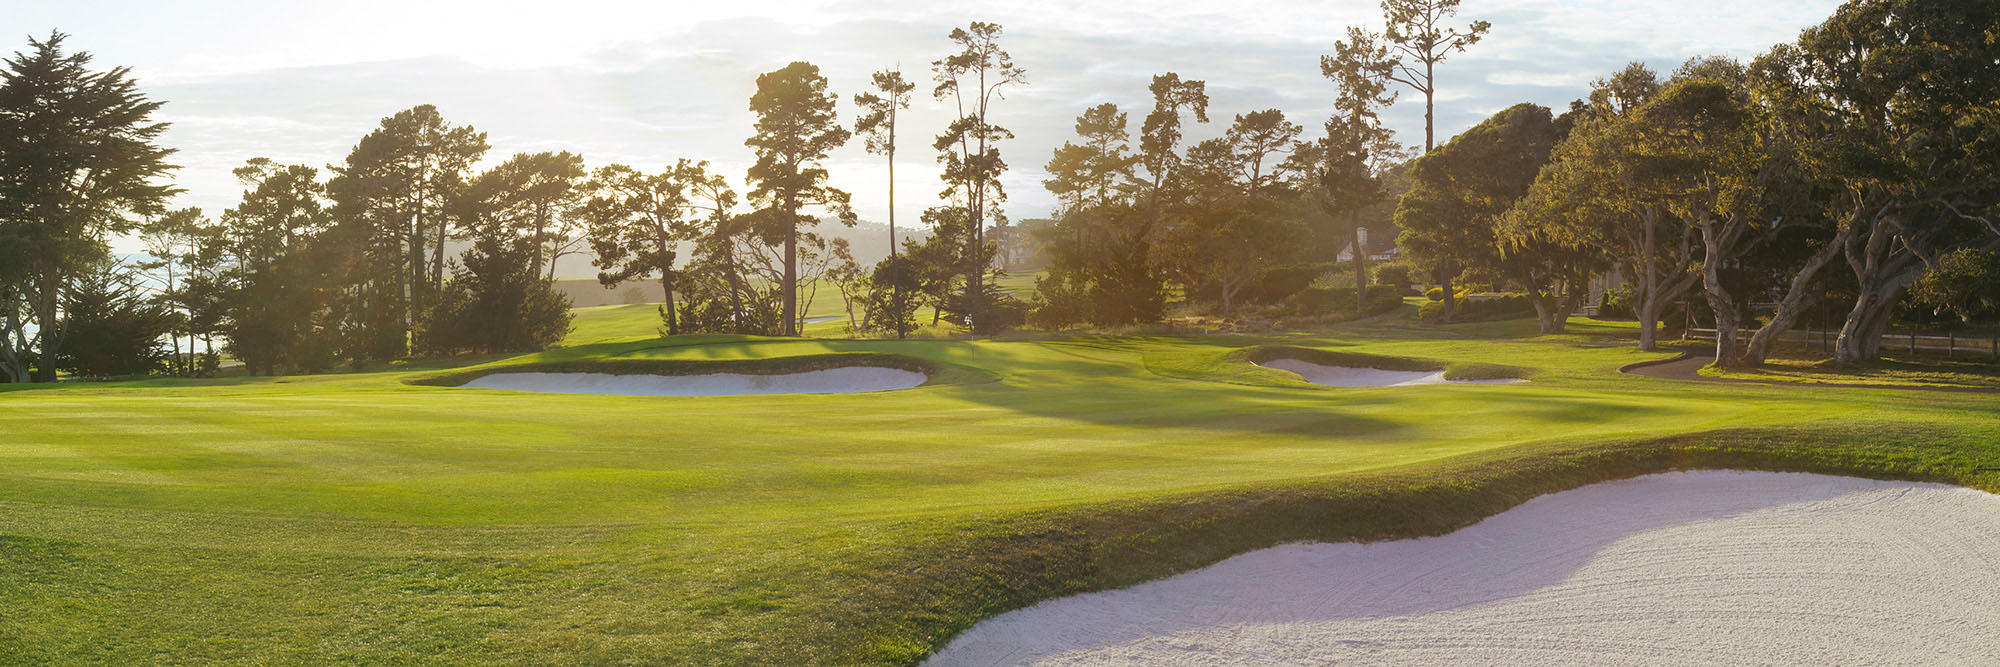 Golf Course Image - Pebble Beach No. 12